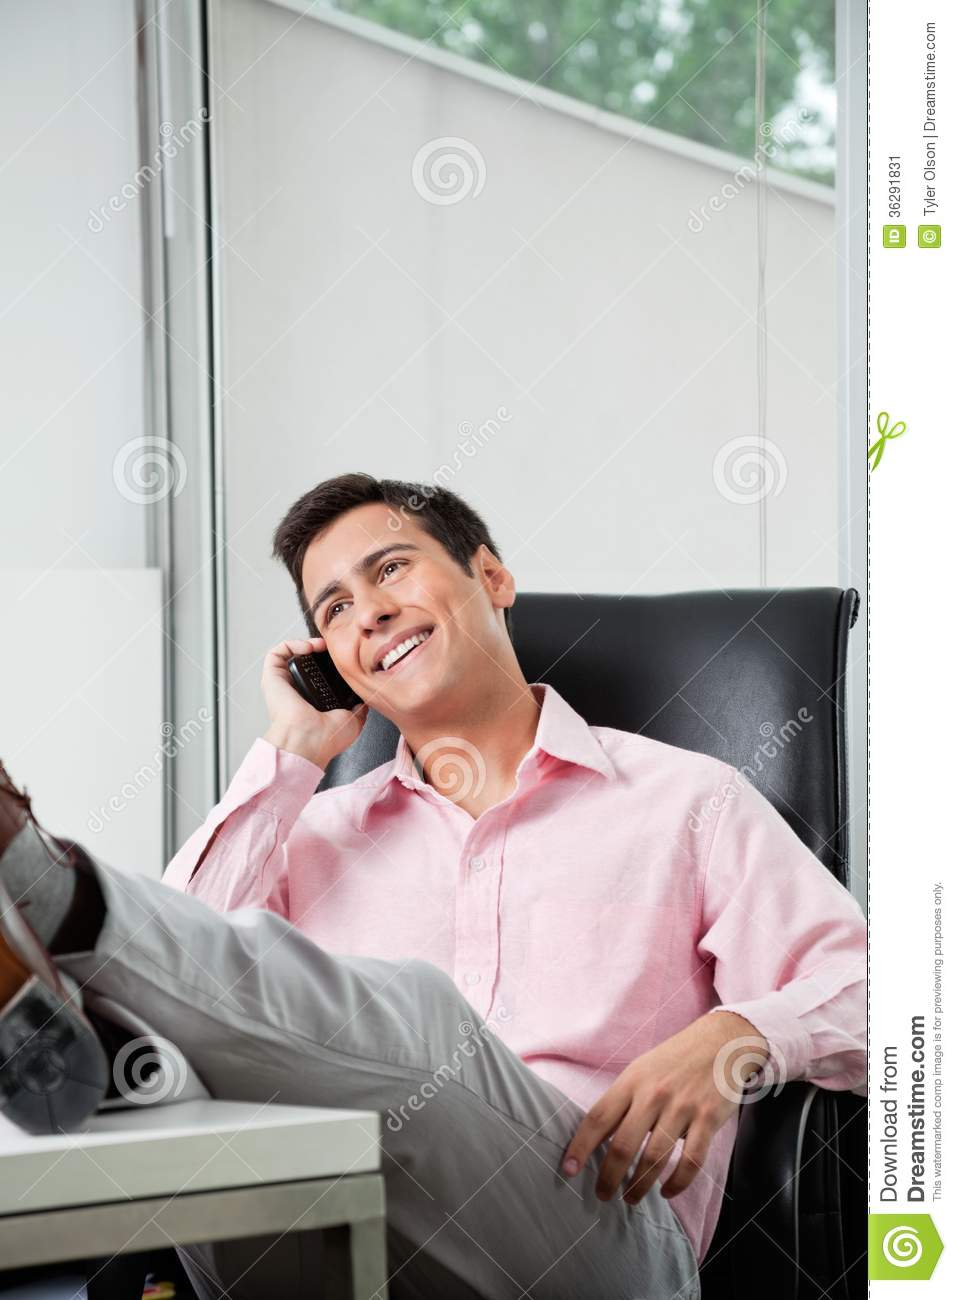 Businessman On A Call Stock Image - Image: 36291831